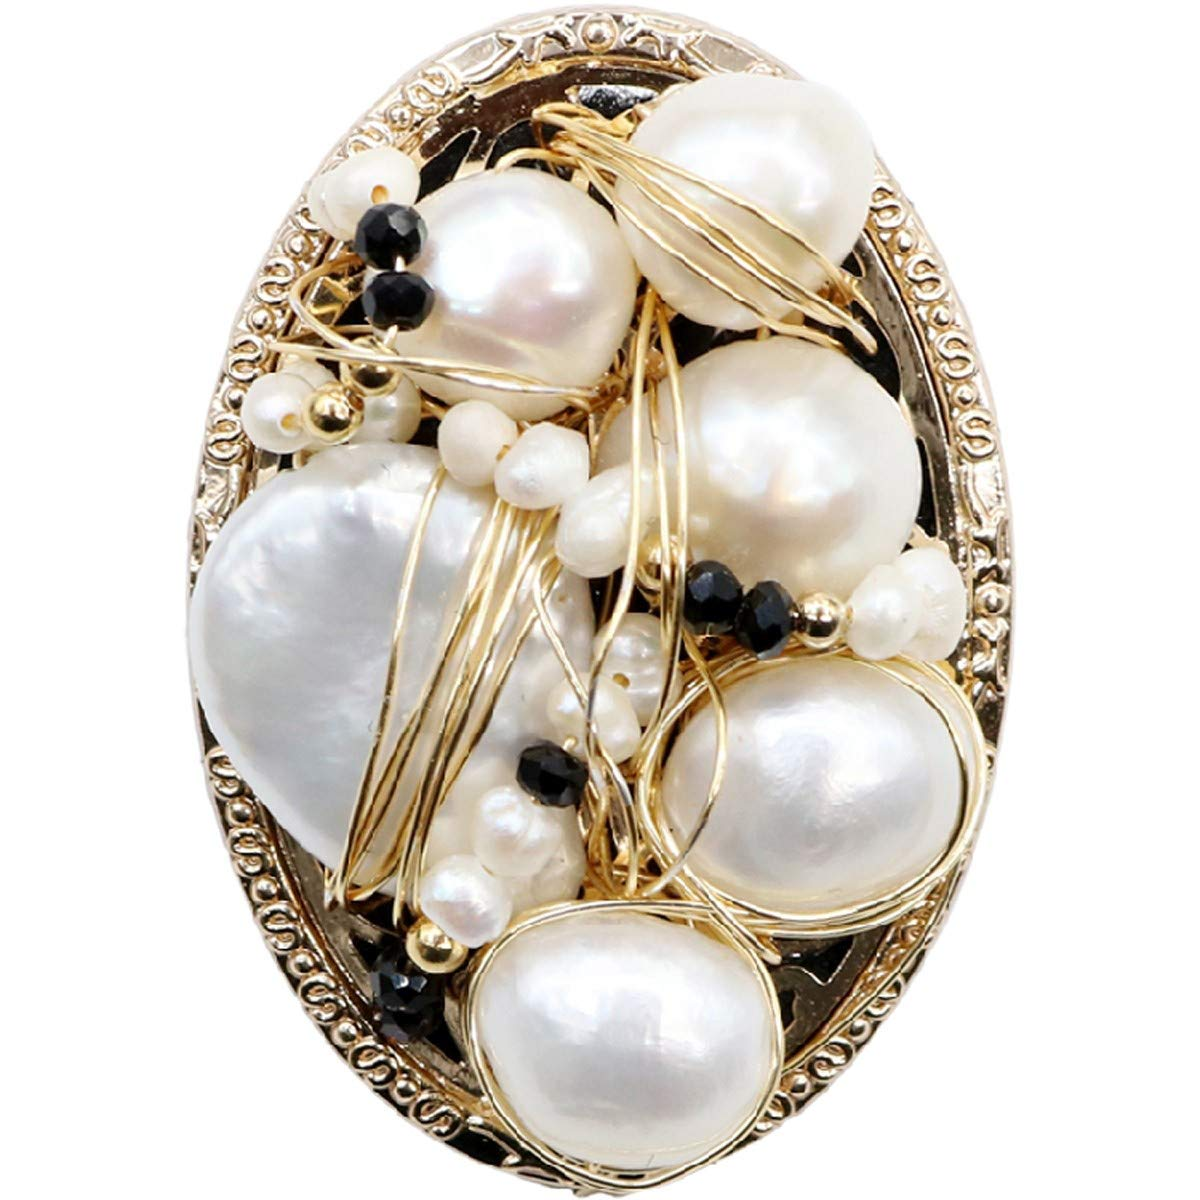 Brightness Uique Design Elegant brooches Pearl Vintage Brooch, Boutonniere, pin, Atmospheric Clothing Accessories Silk Scarf Buckle